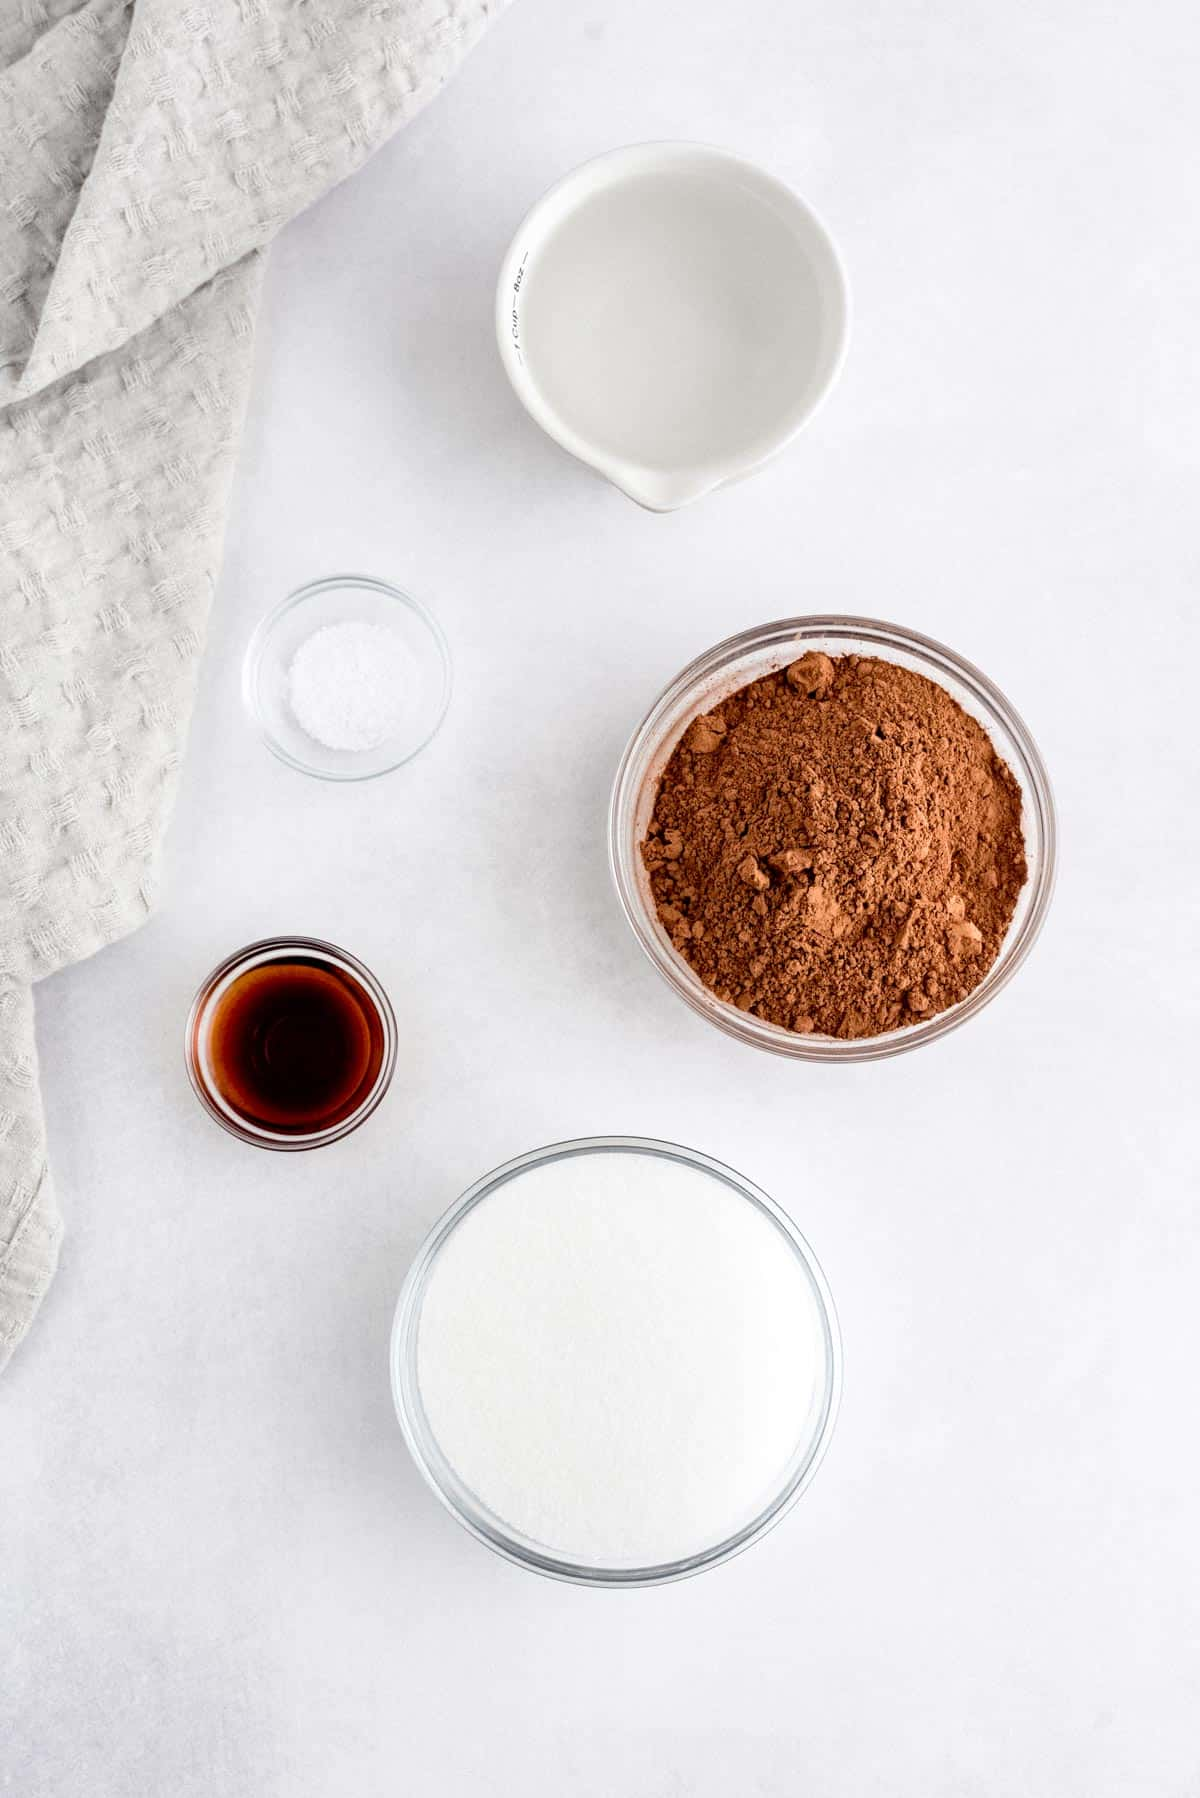 Five small bowls of ingredients: cocoa powder, sugar, vanilla, water, and salt.